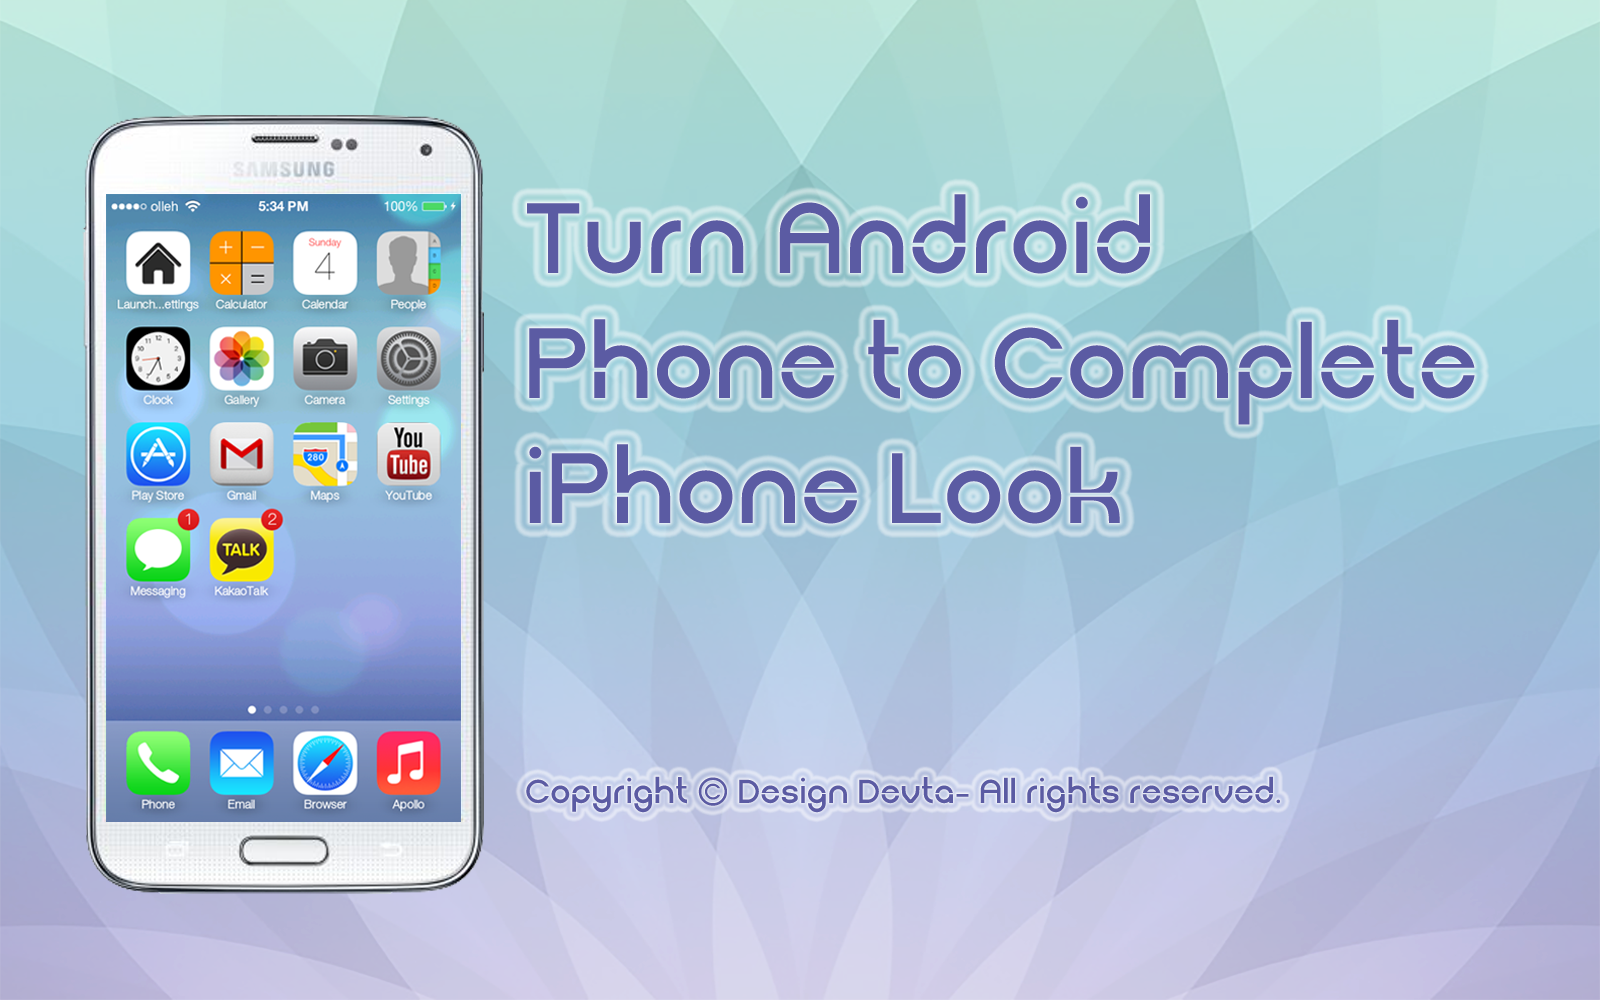 Turn Android Phone to Complete iPhone Look